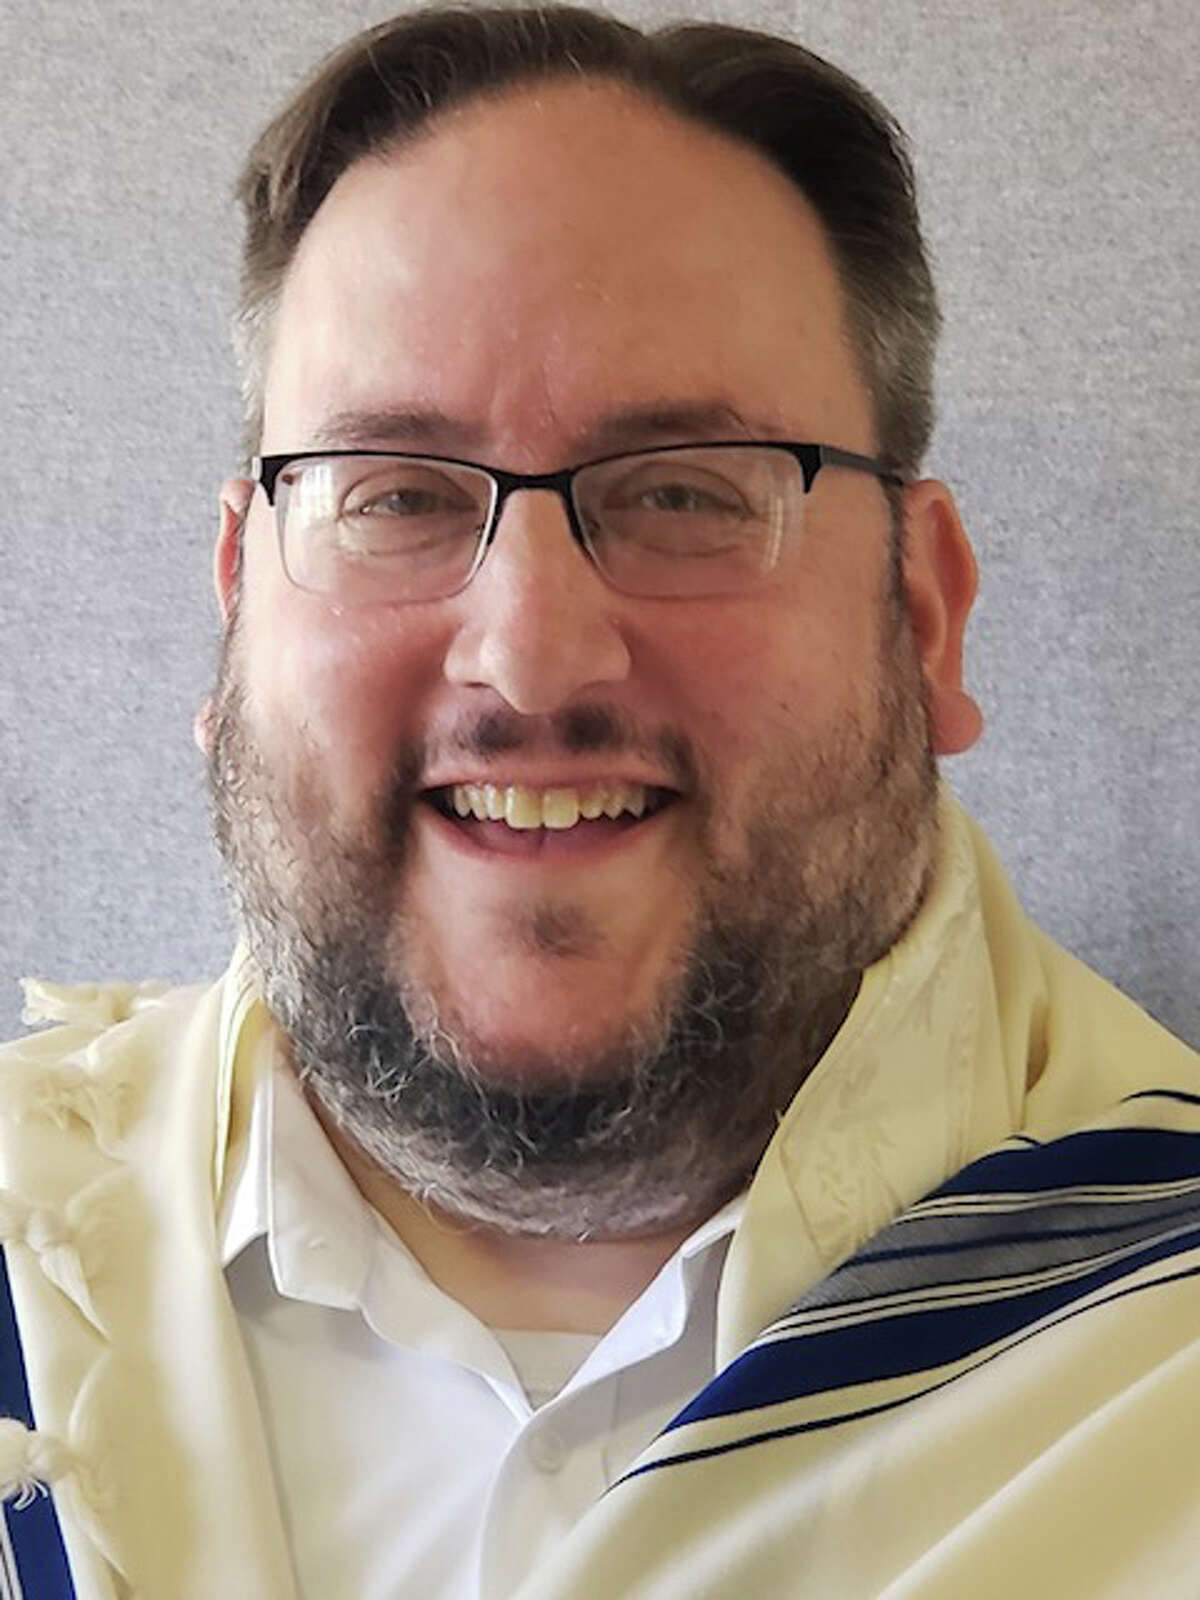 Young family man and rabbi, Ami Monson has been counseling for elder residents at the Los Angeles Jewish Home and The Nest (also in LA) and serving as Youth Director at Valley Beth Shalom in Encino. He will be replacing Rabbi Bev Magidson as chaplain when she retires from 25 years at Jewish Family Services.